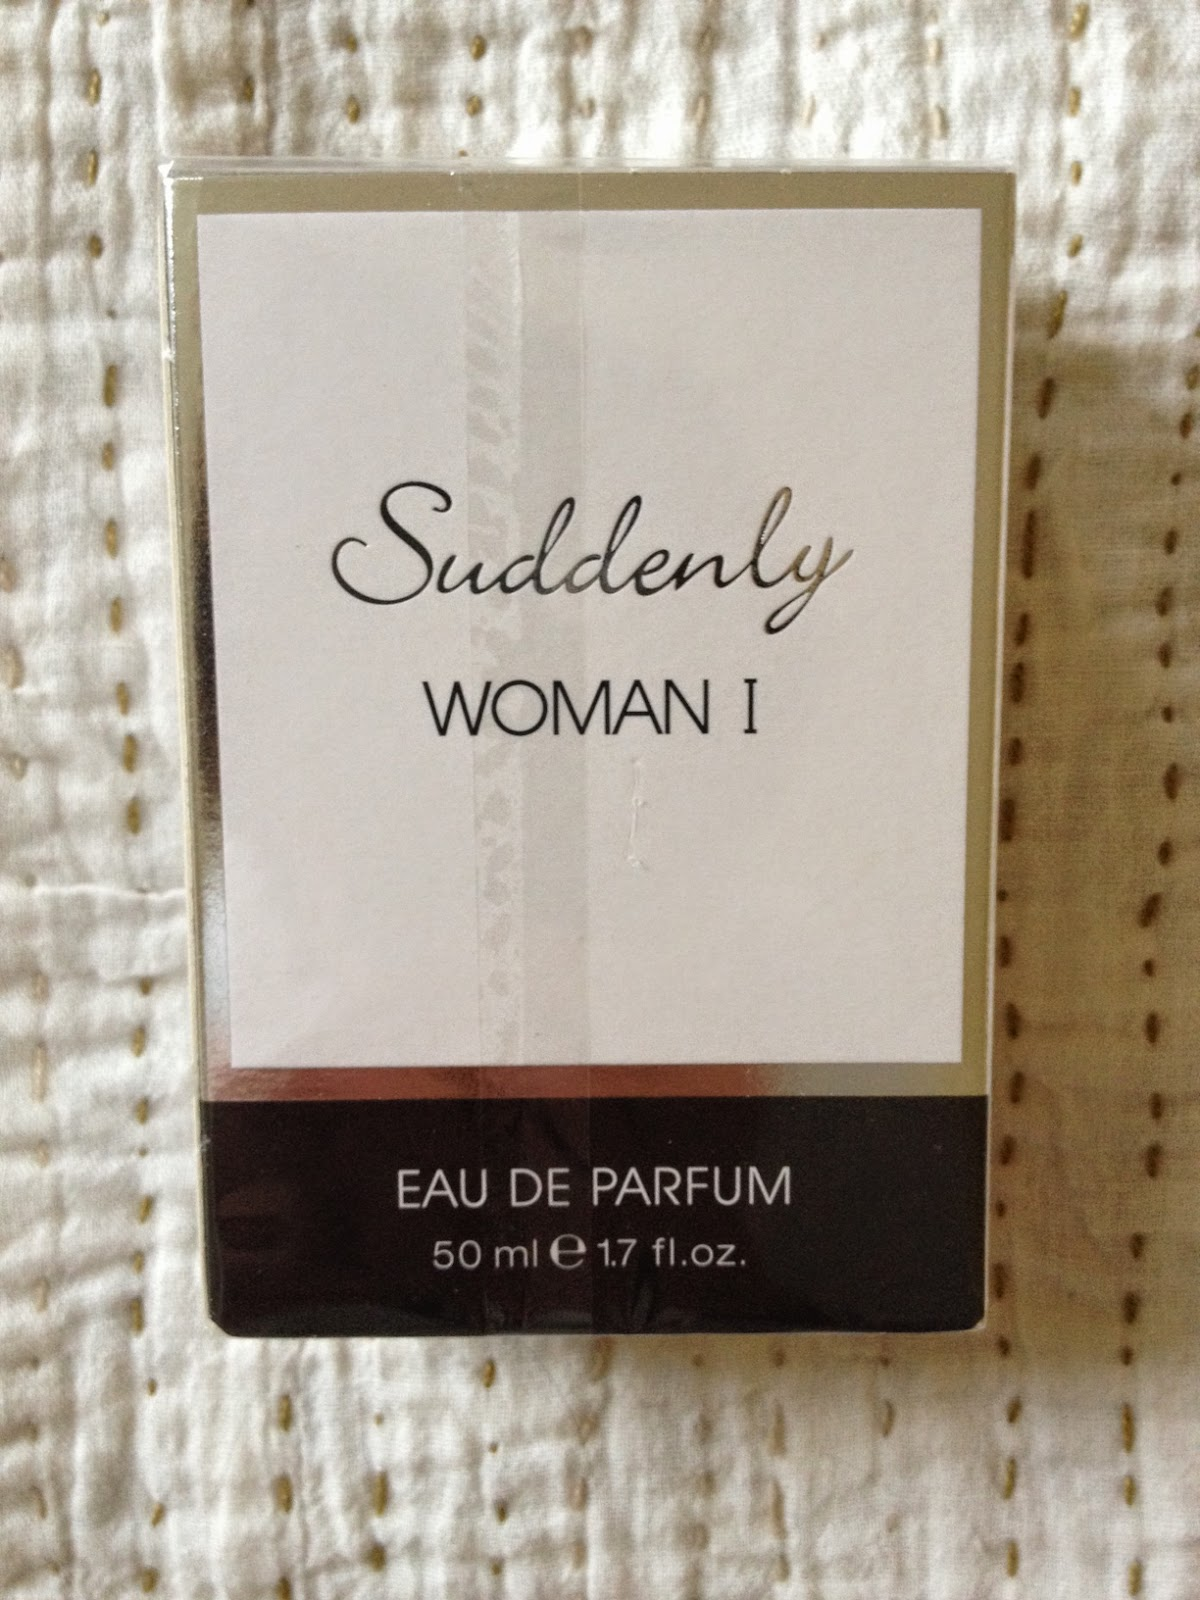 Bonkers About Perfume Lidl Suddenly Woman 1 Review The Fifth Hermes 24 Faubourg Edp 100 Ml